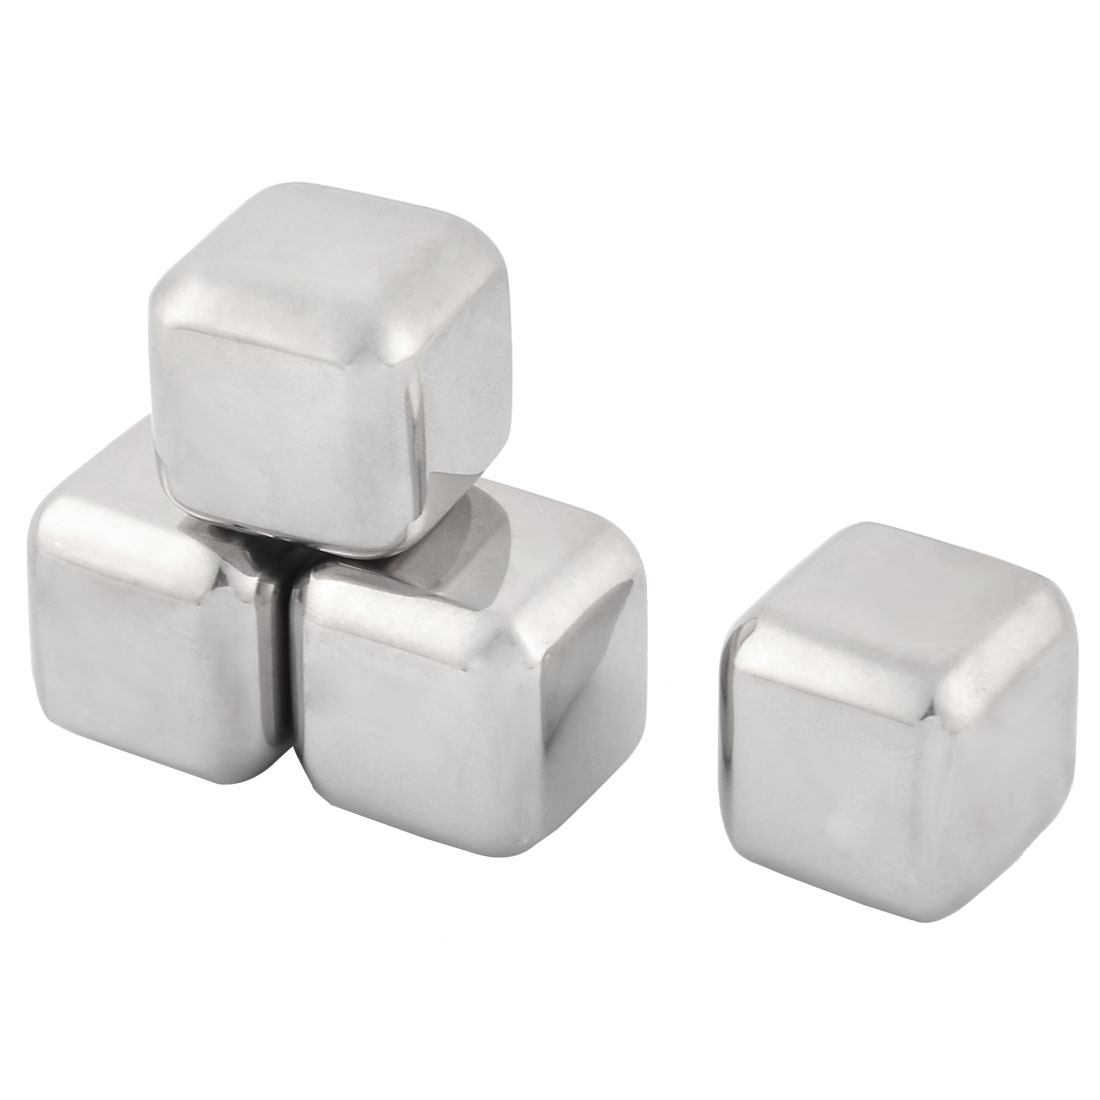 Home Stainless Steel Cubic Shaped Soda Juice Ice Cube Silver Tone 4 Pcs w Storage Box